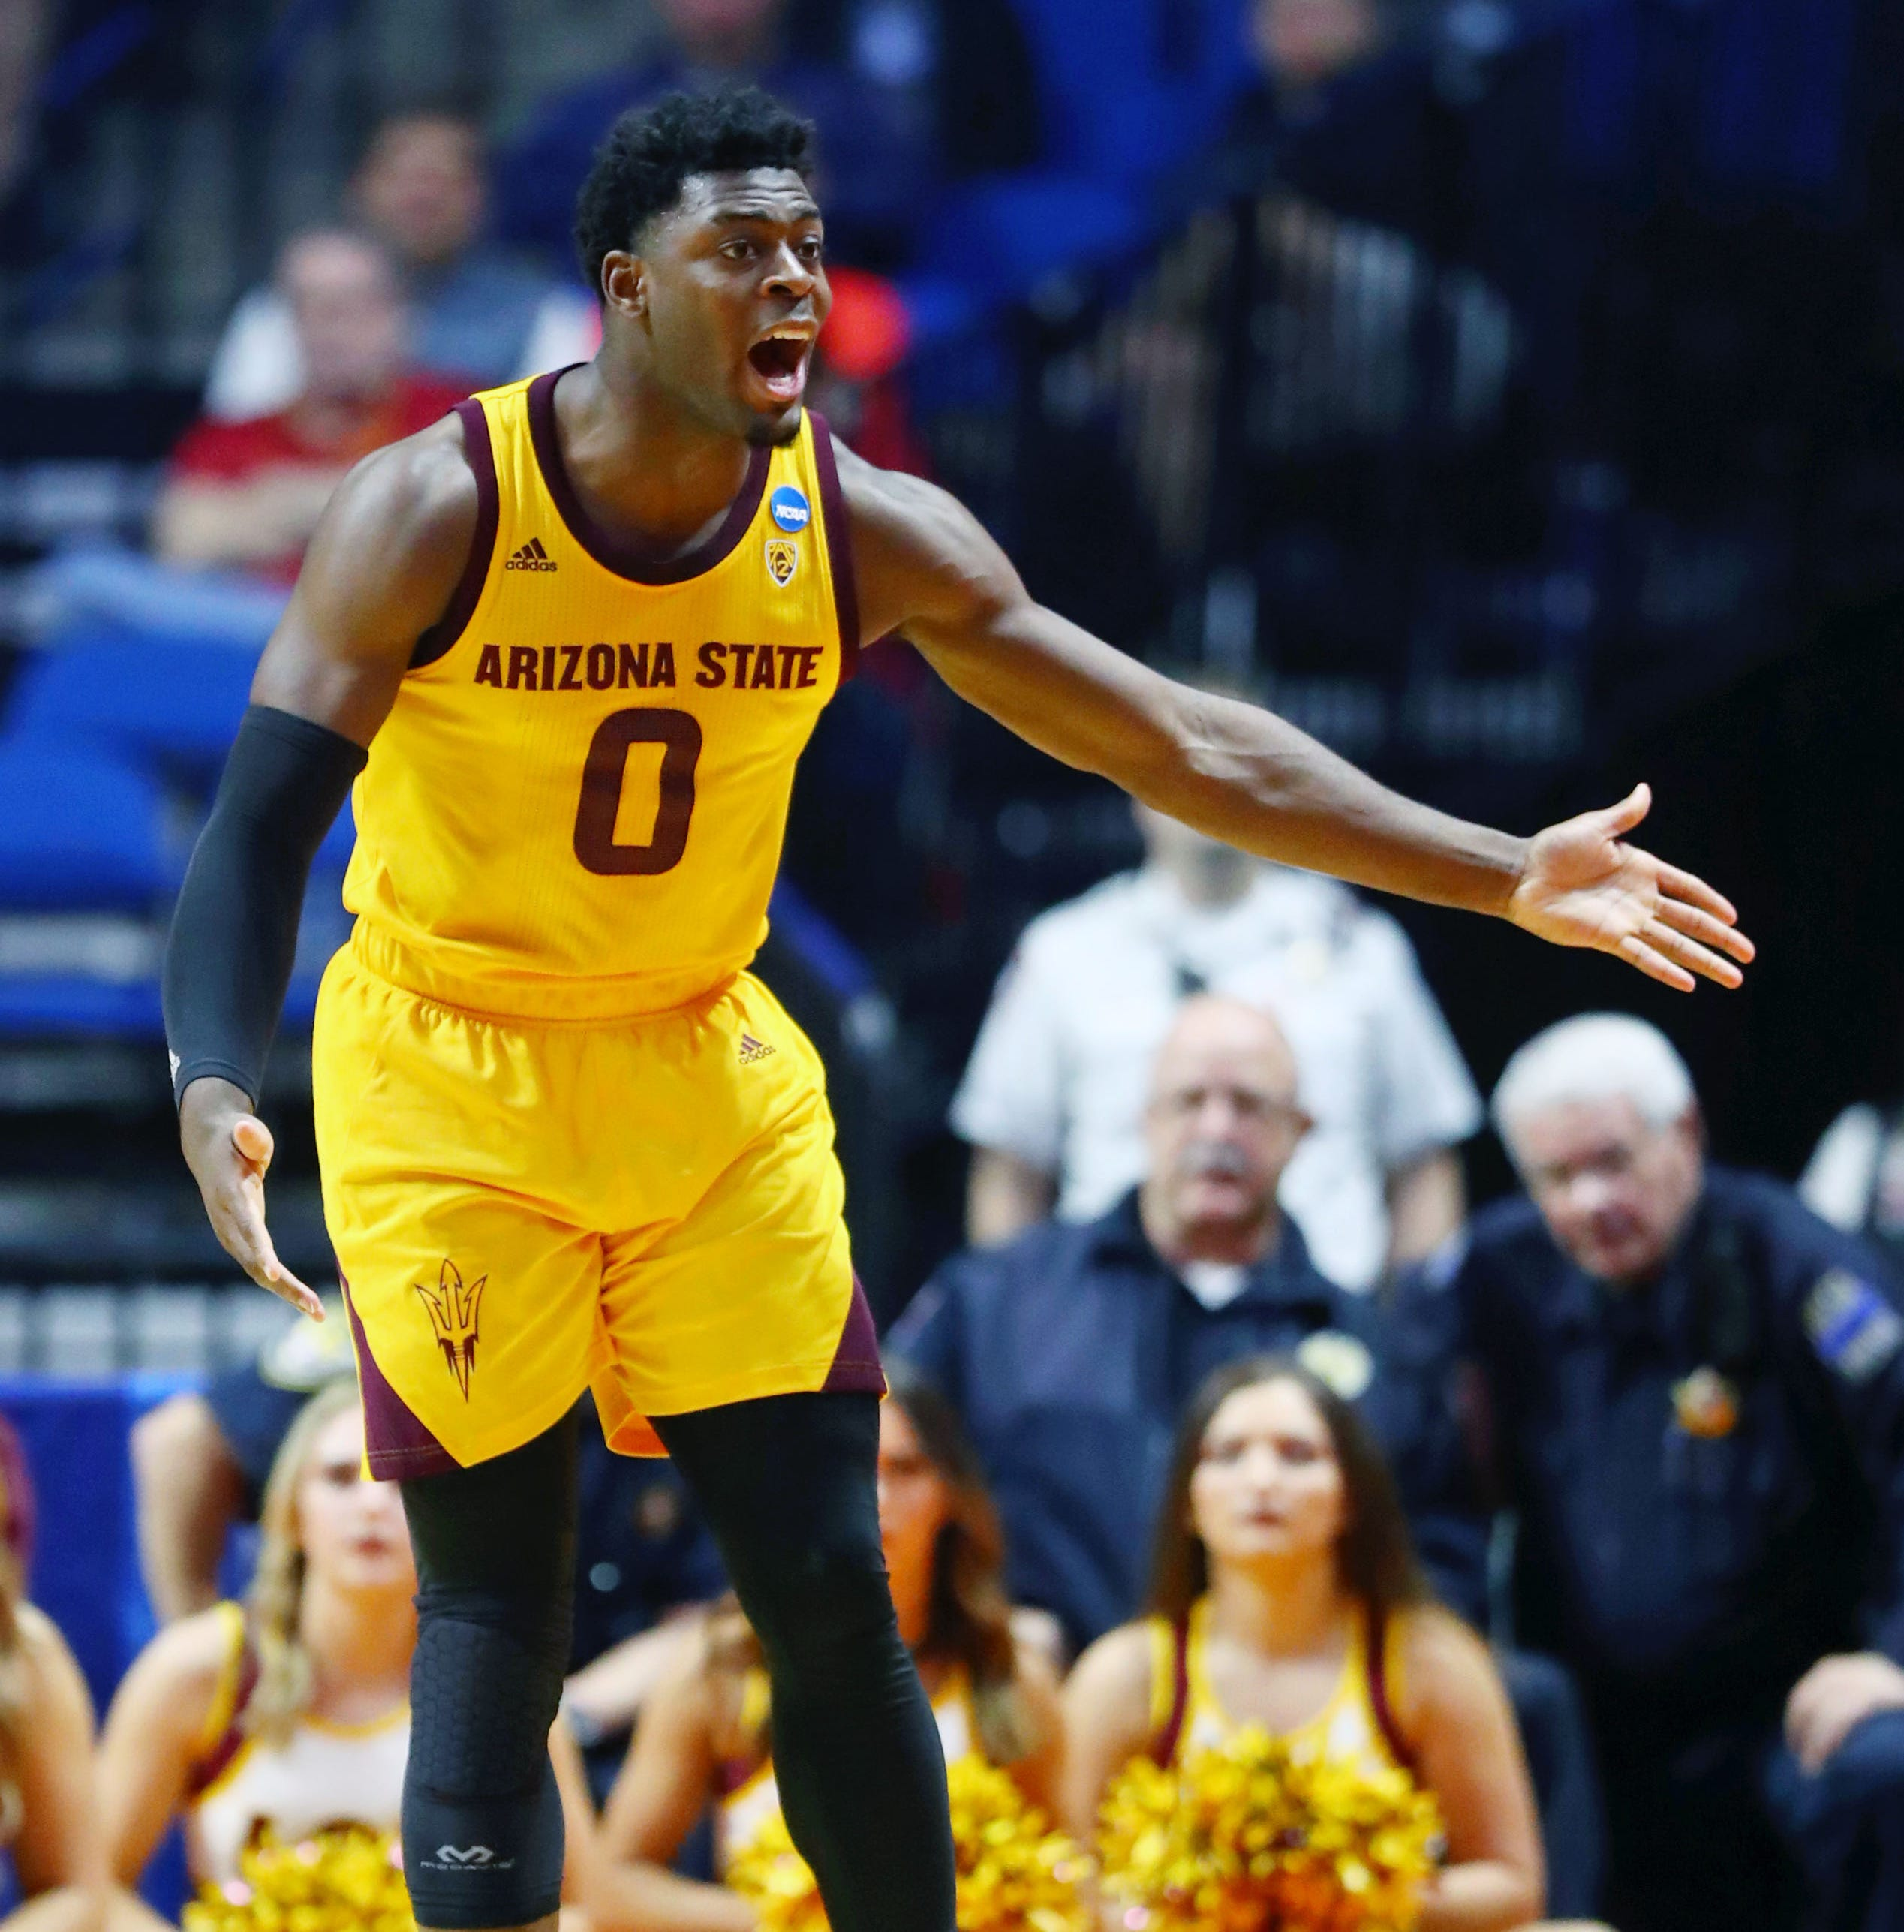 ASU men's season ends in NCAA Tournament, which means it was a successful year